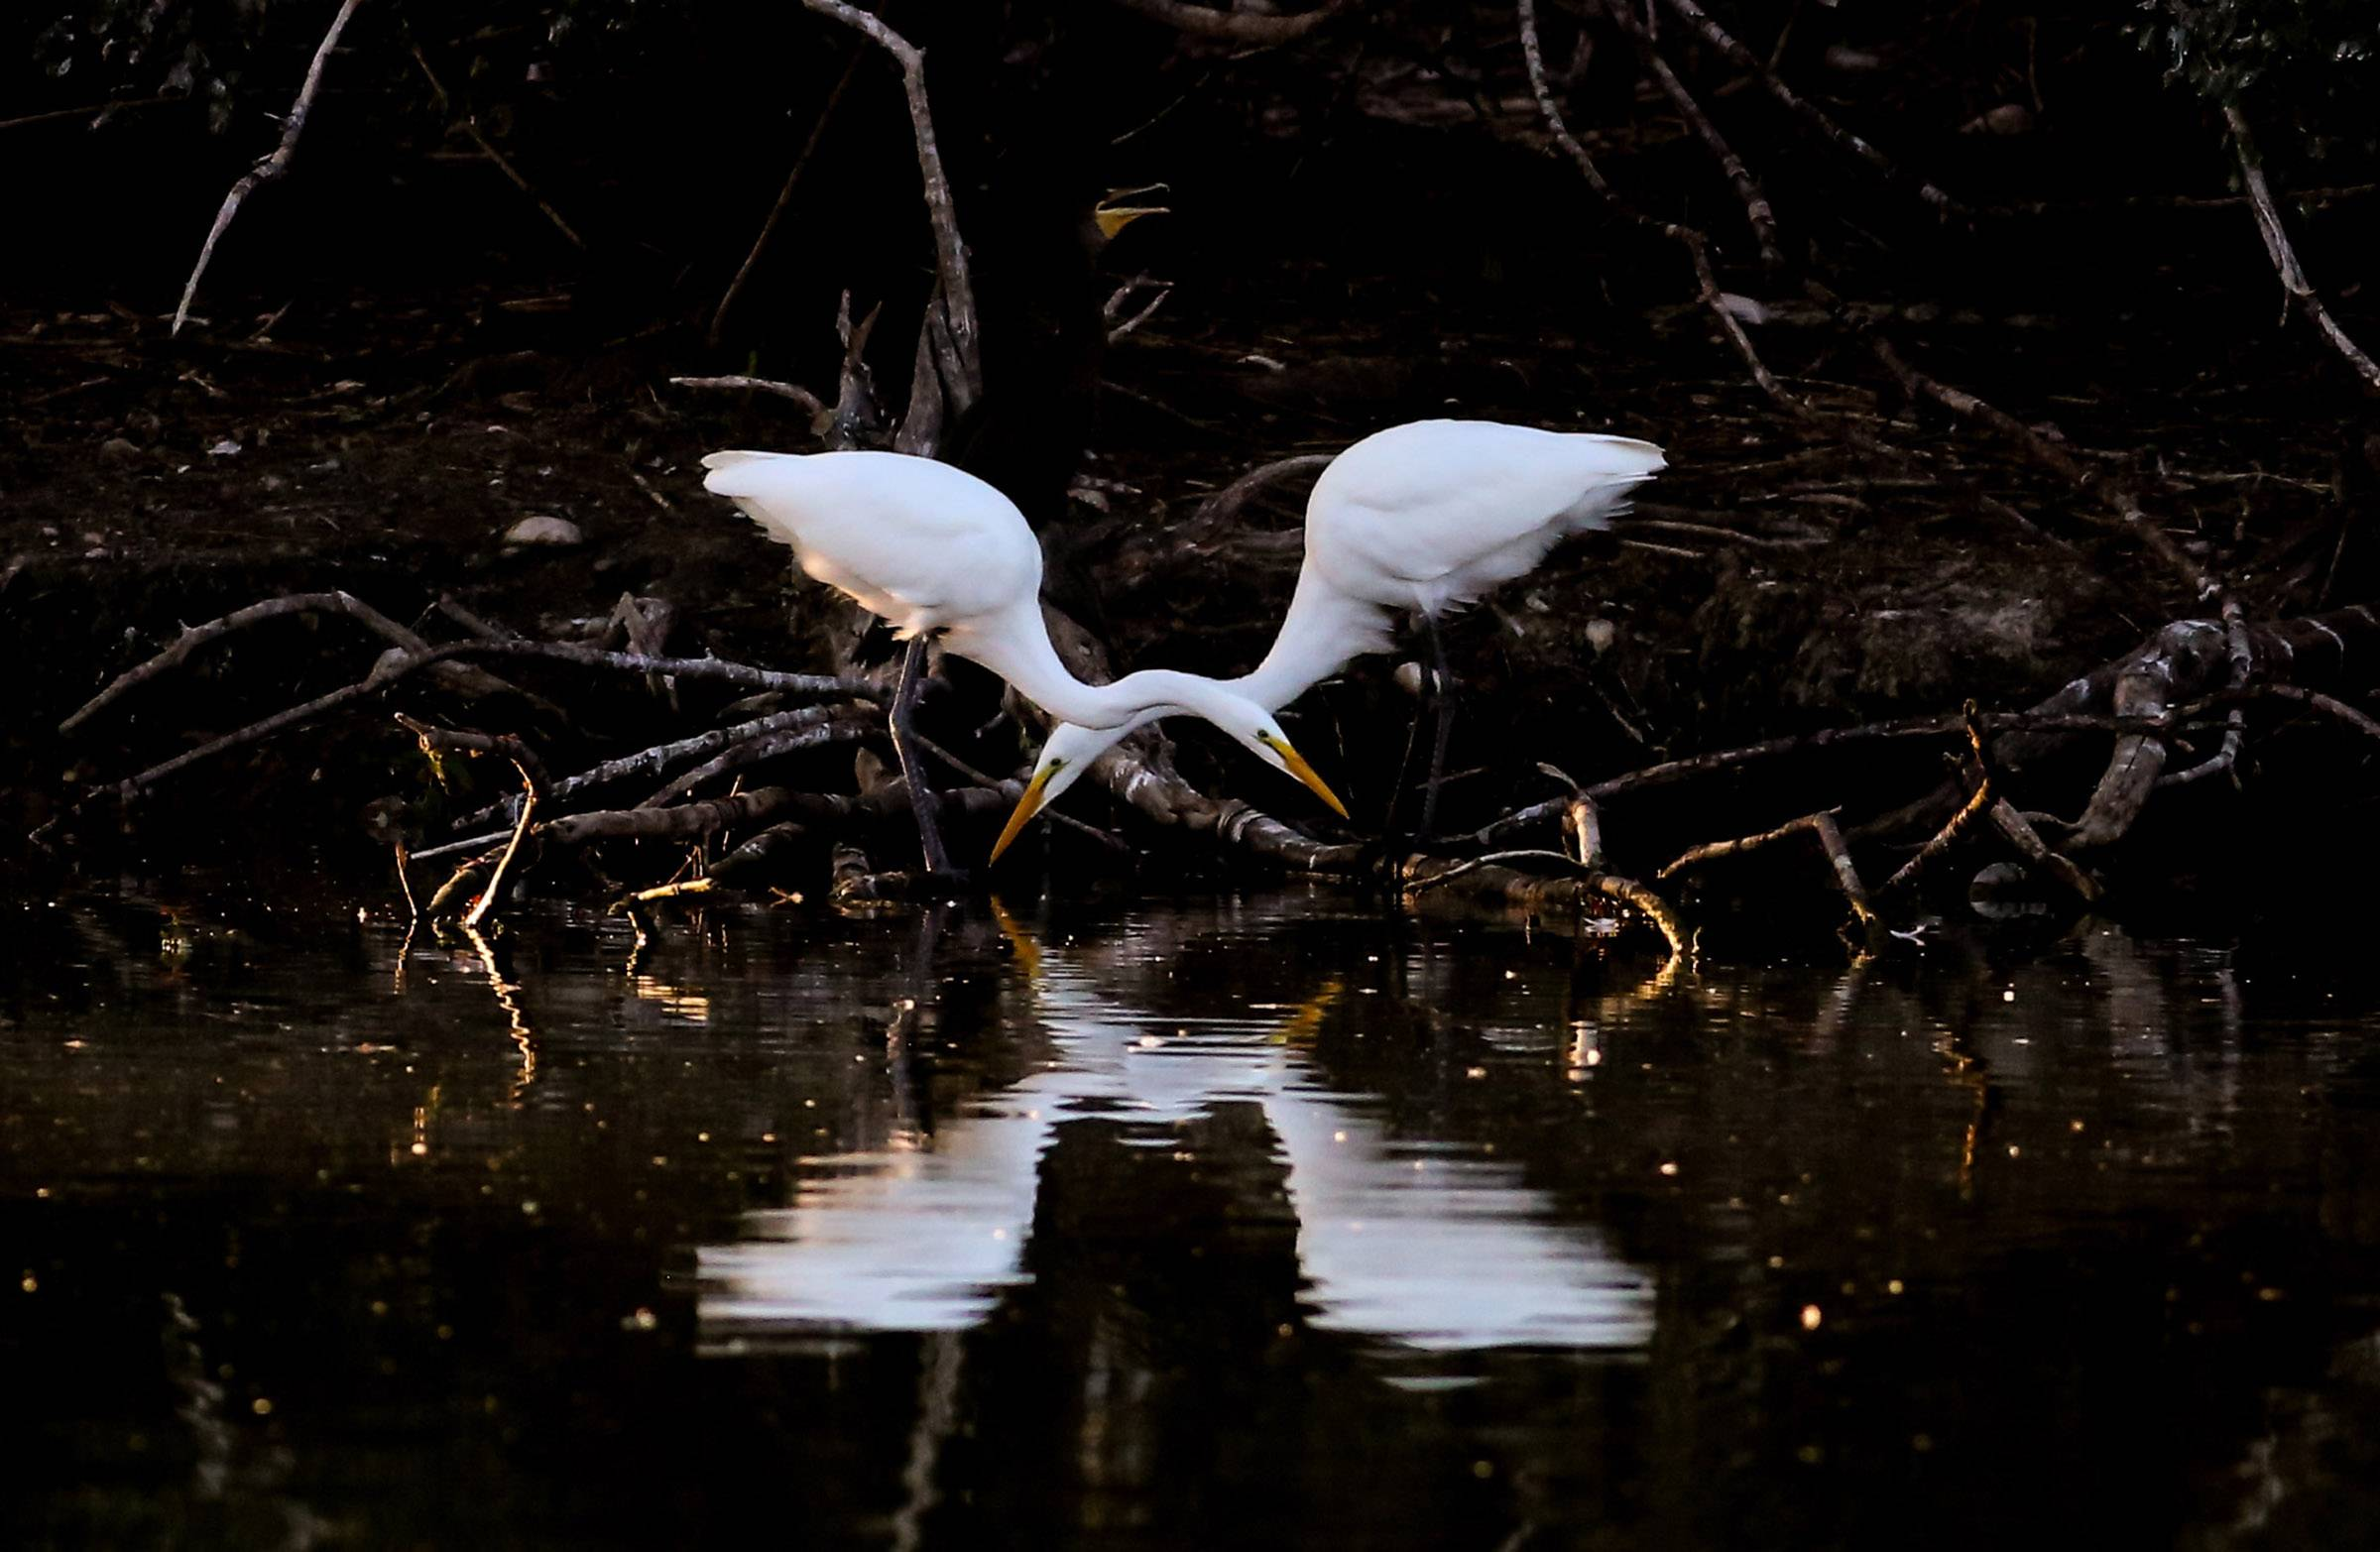 Egrets feed in a pond on Central Road in Hoffman Estates on July 26.